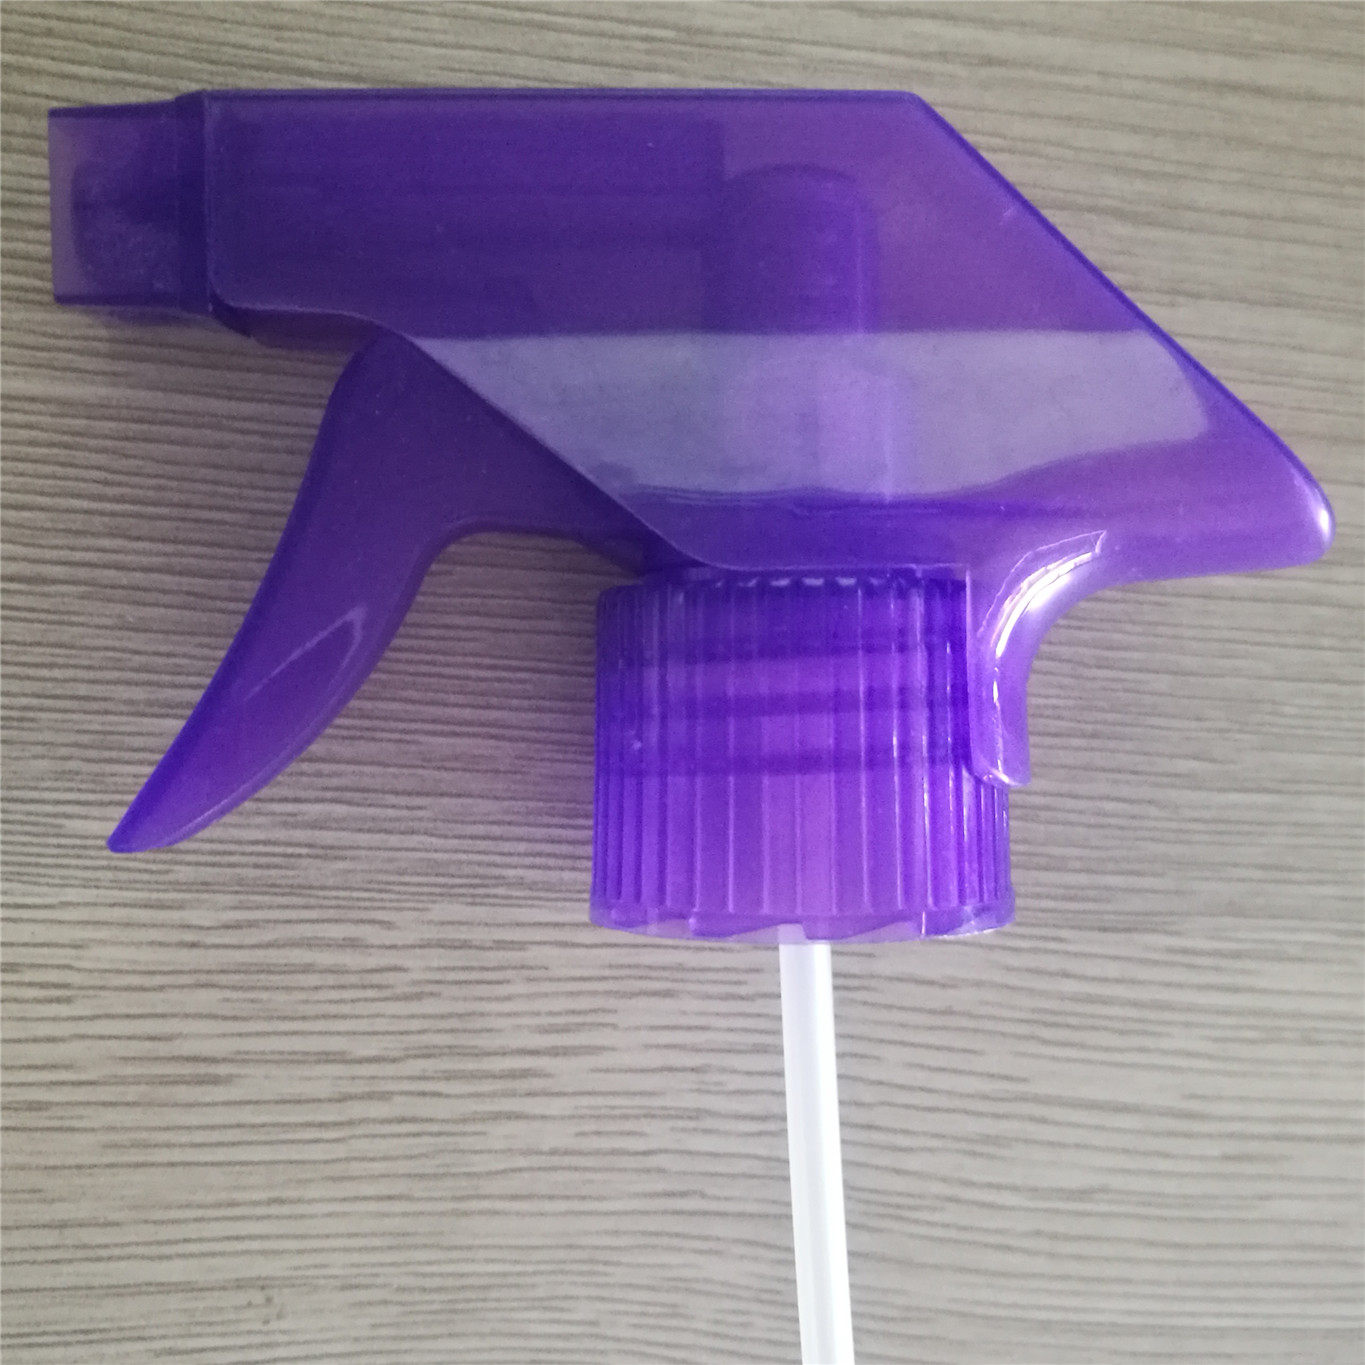 28/415 trigger sprayer for garden , for car cleaning and home cleaning in stock